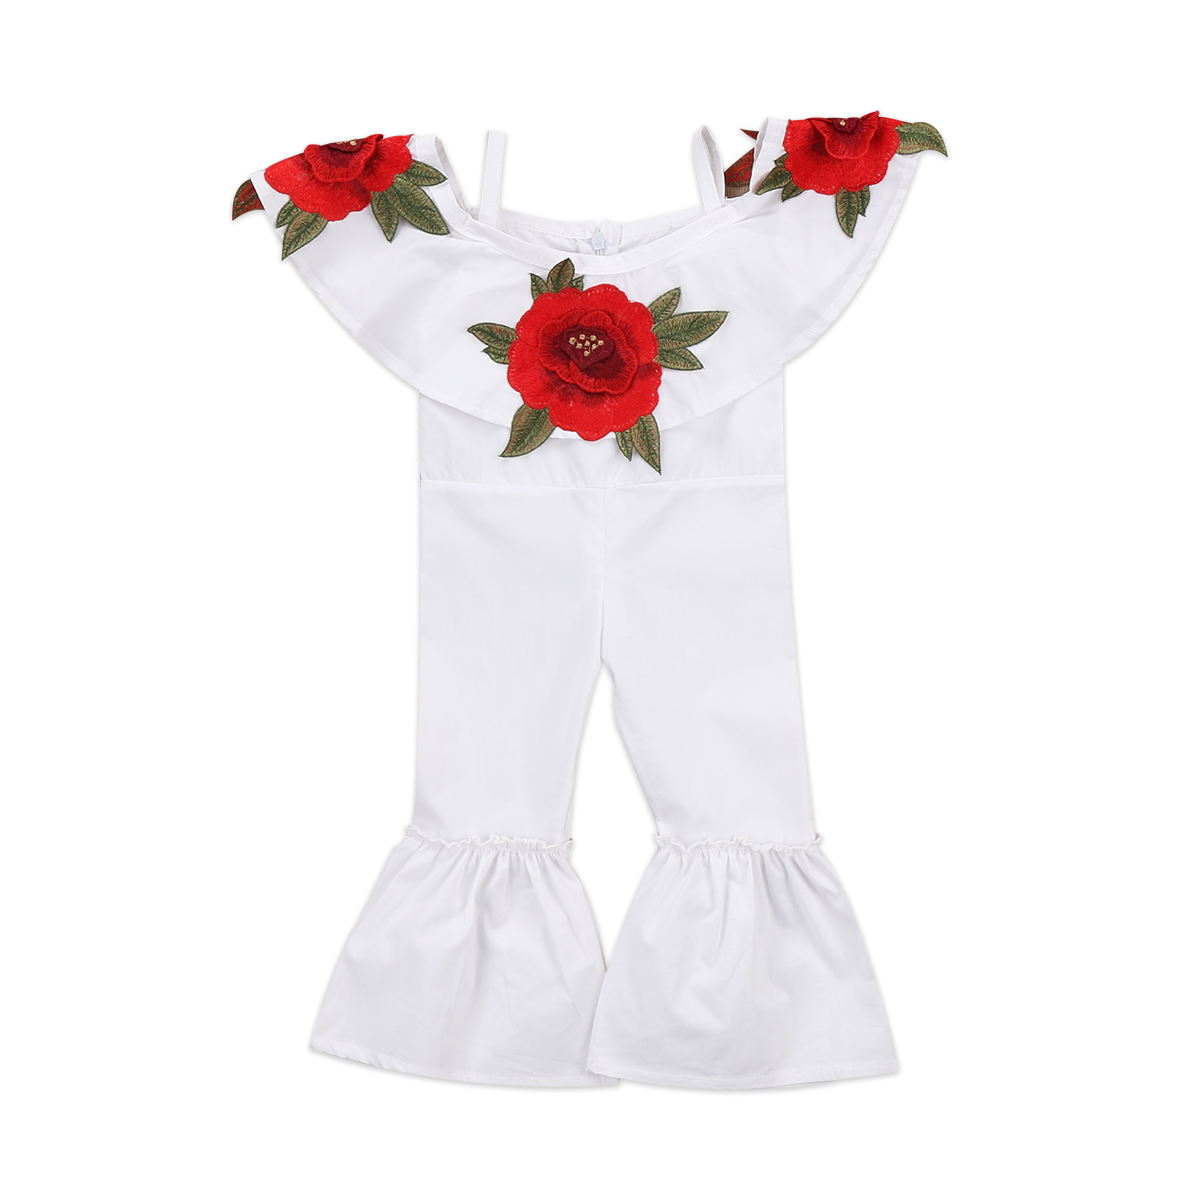 Kids Infant Baby Girls Clothing Romper Short Sleeve Flower Cute Jumpsuit Clothes Outfits Sunsuit Girl 2pcs set newborn floral baby girl clothes 2017 summer sleeveless cotton ruffles romper baby bodysuit headband outfits sunsuit